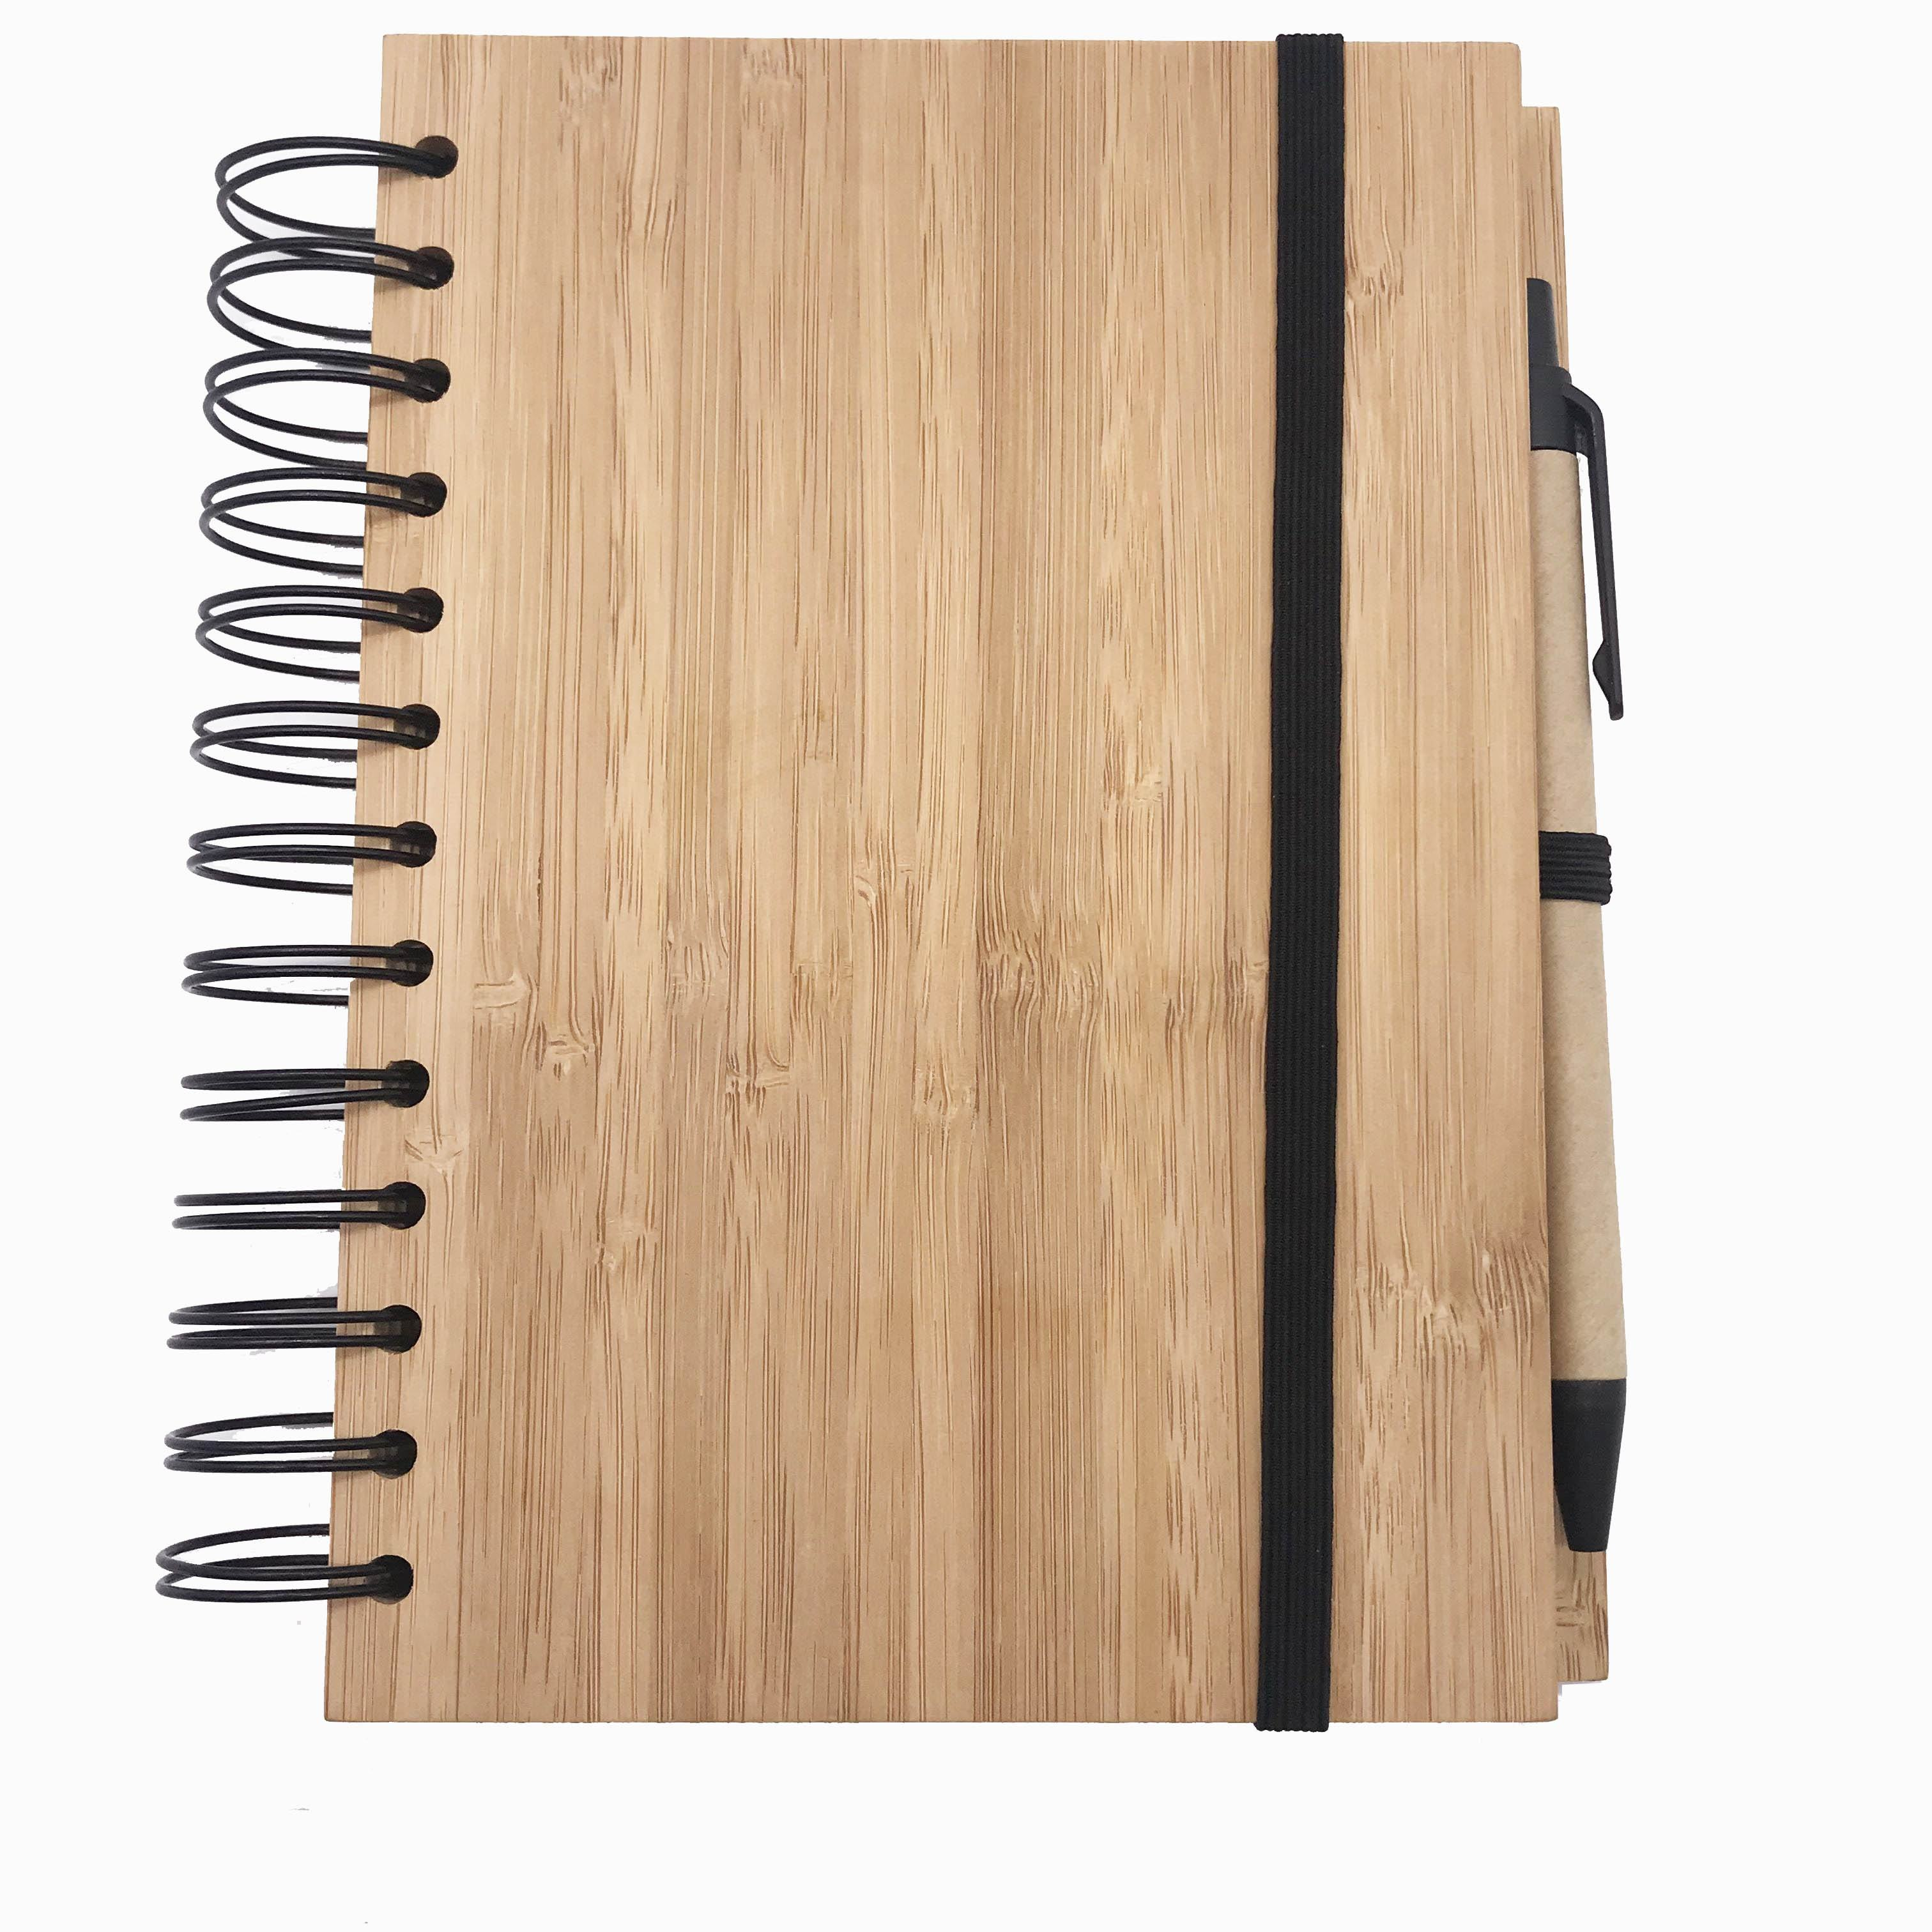 A6 80 Sheets Customized Recycle Wooden Bamboo Cover Spiral Notebook With Pen